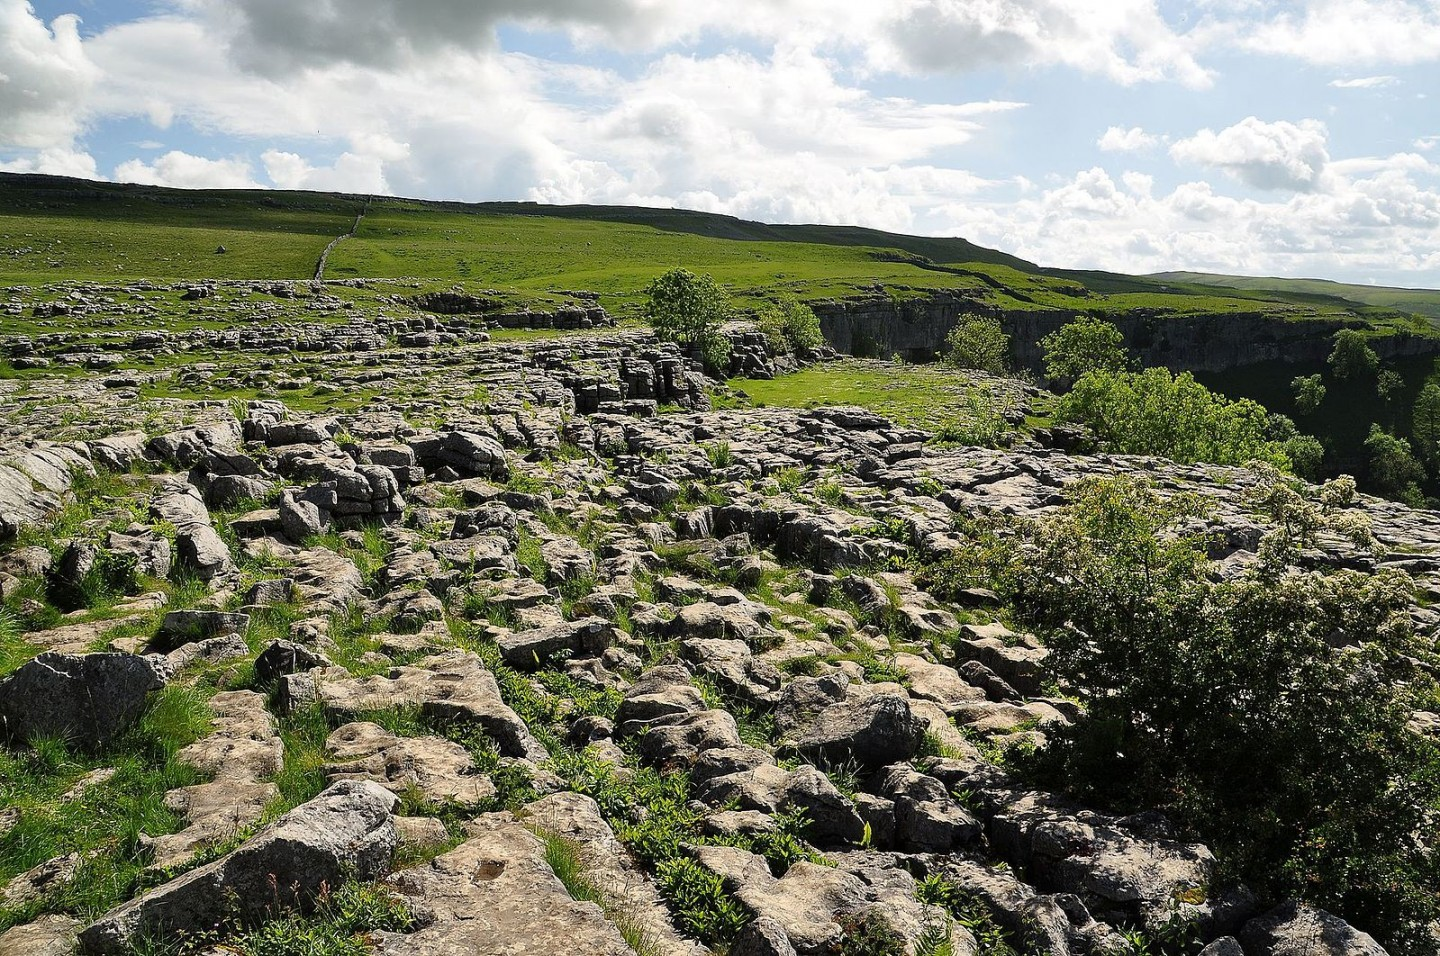 Limestone_pavement_above_Malham_Cove_(5831)